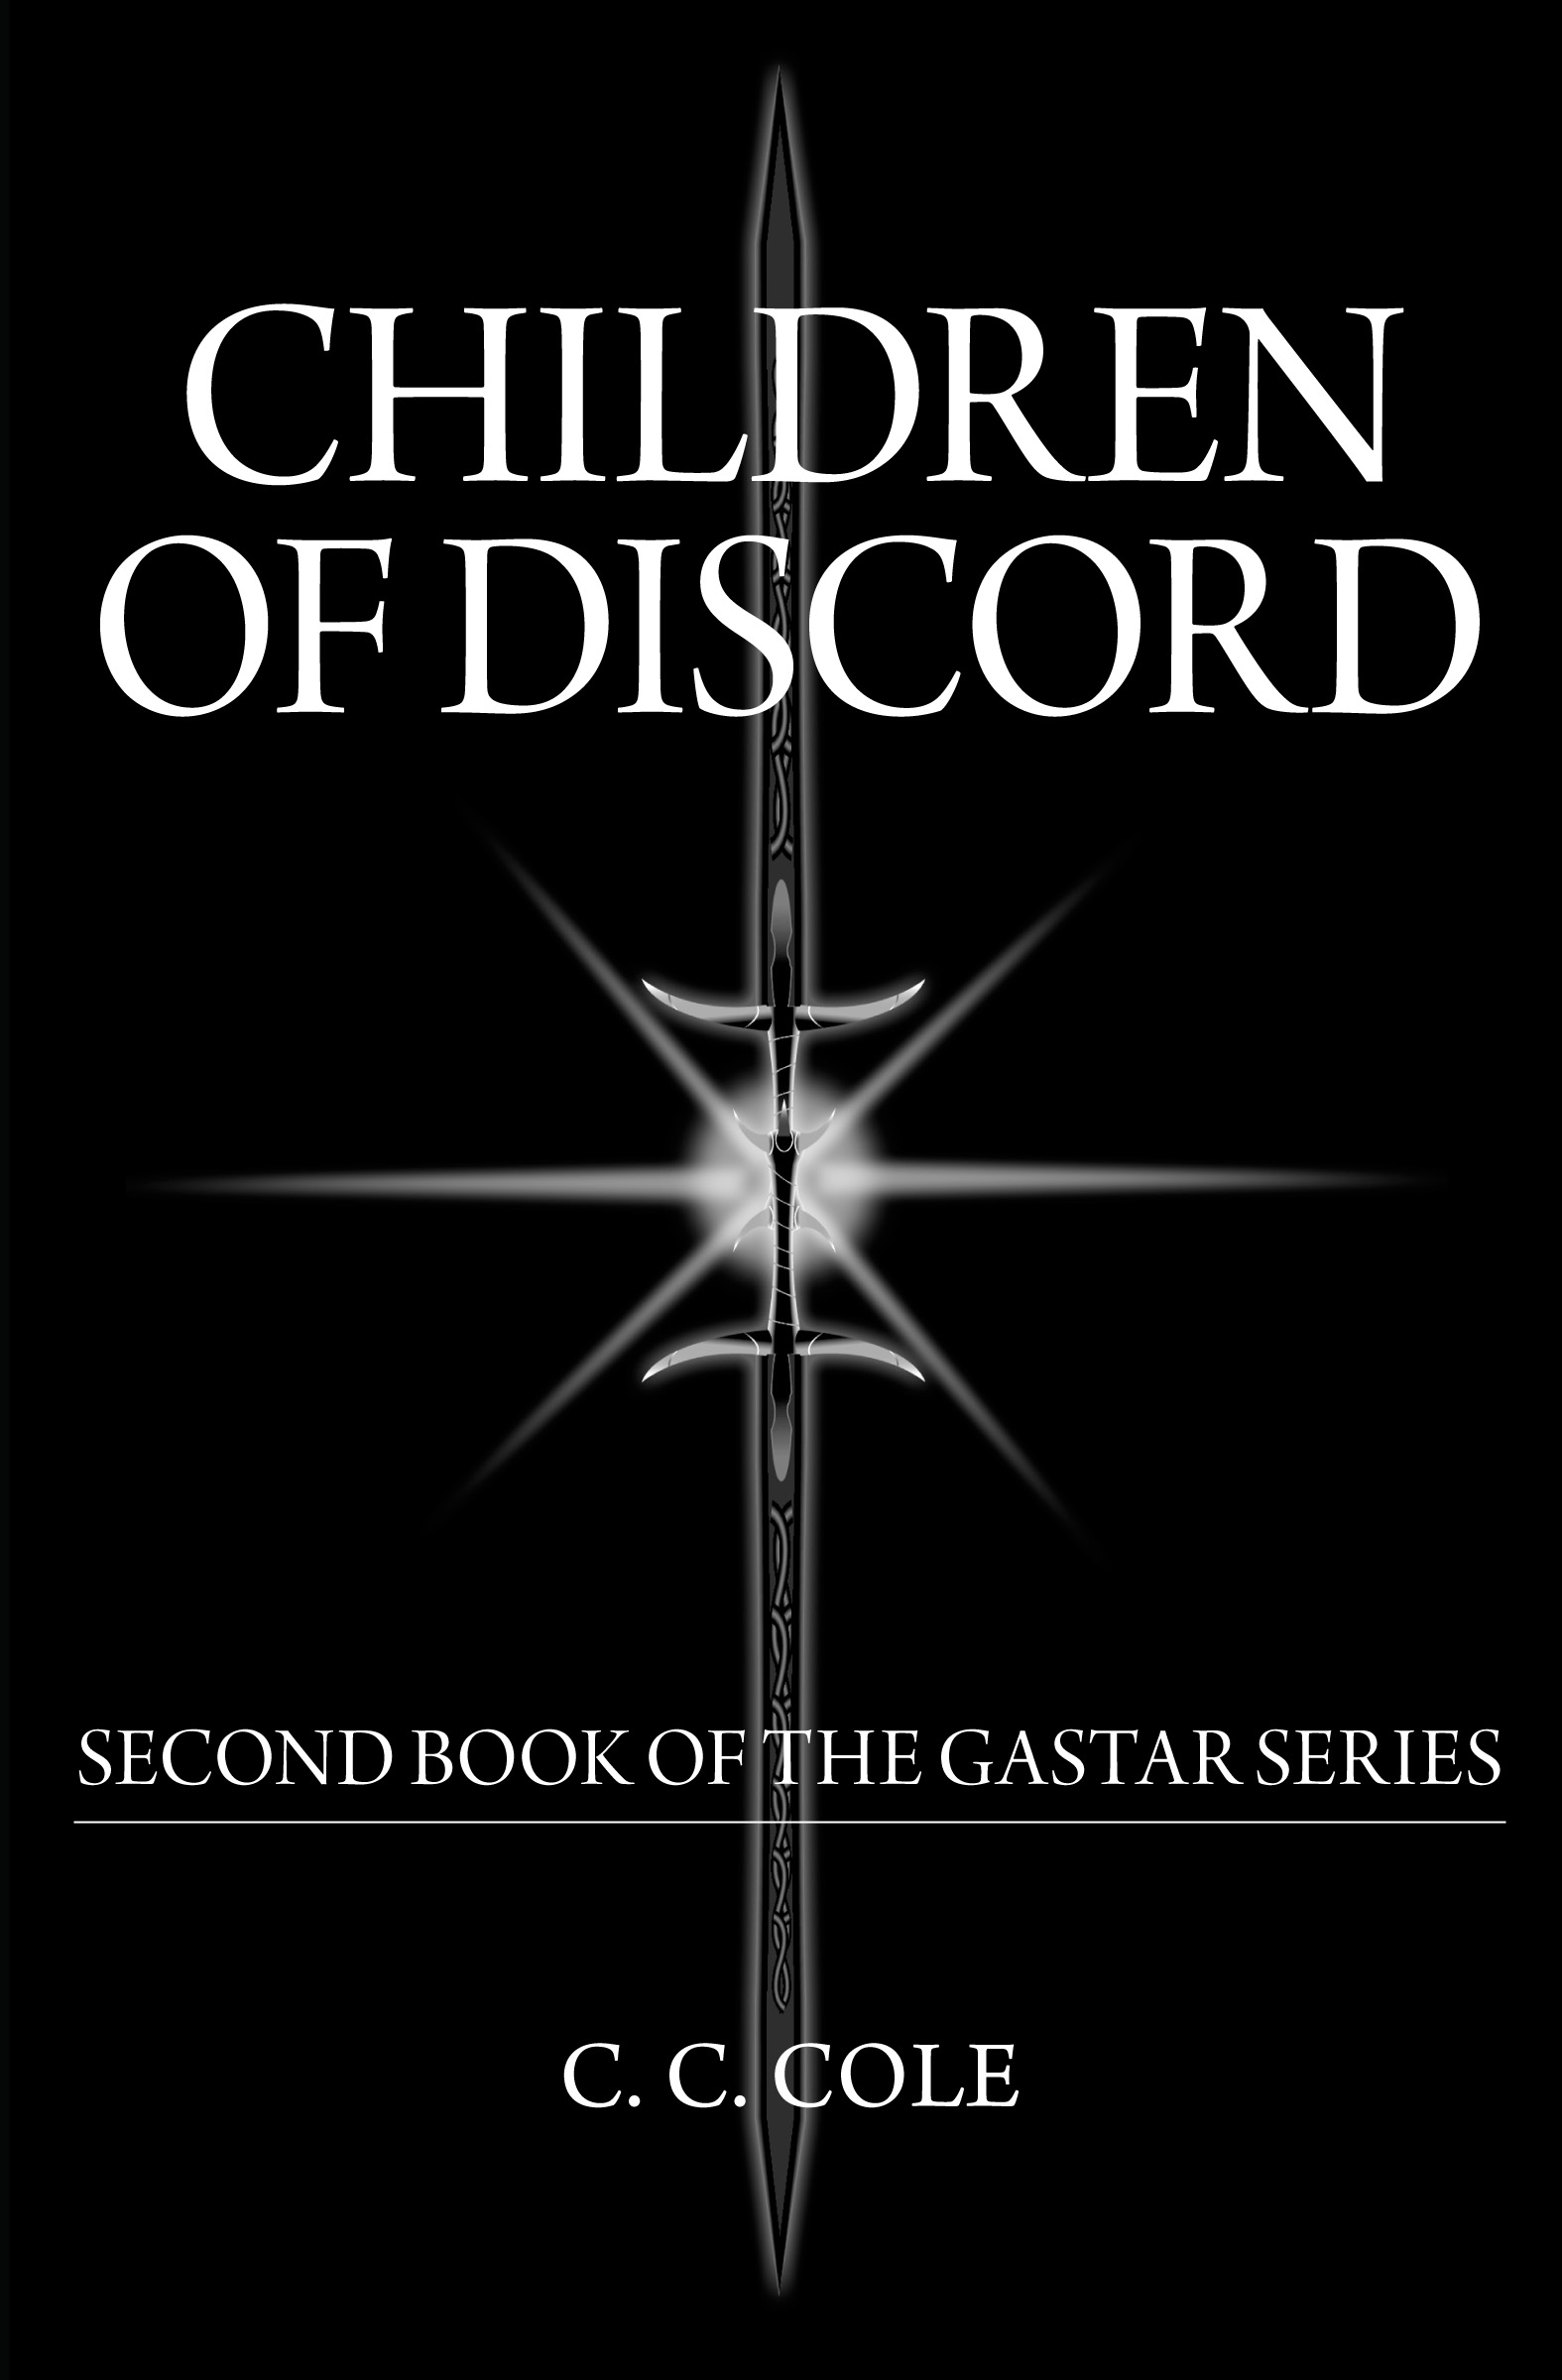 Second Book of the Gastar Series: Children of Discord